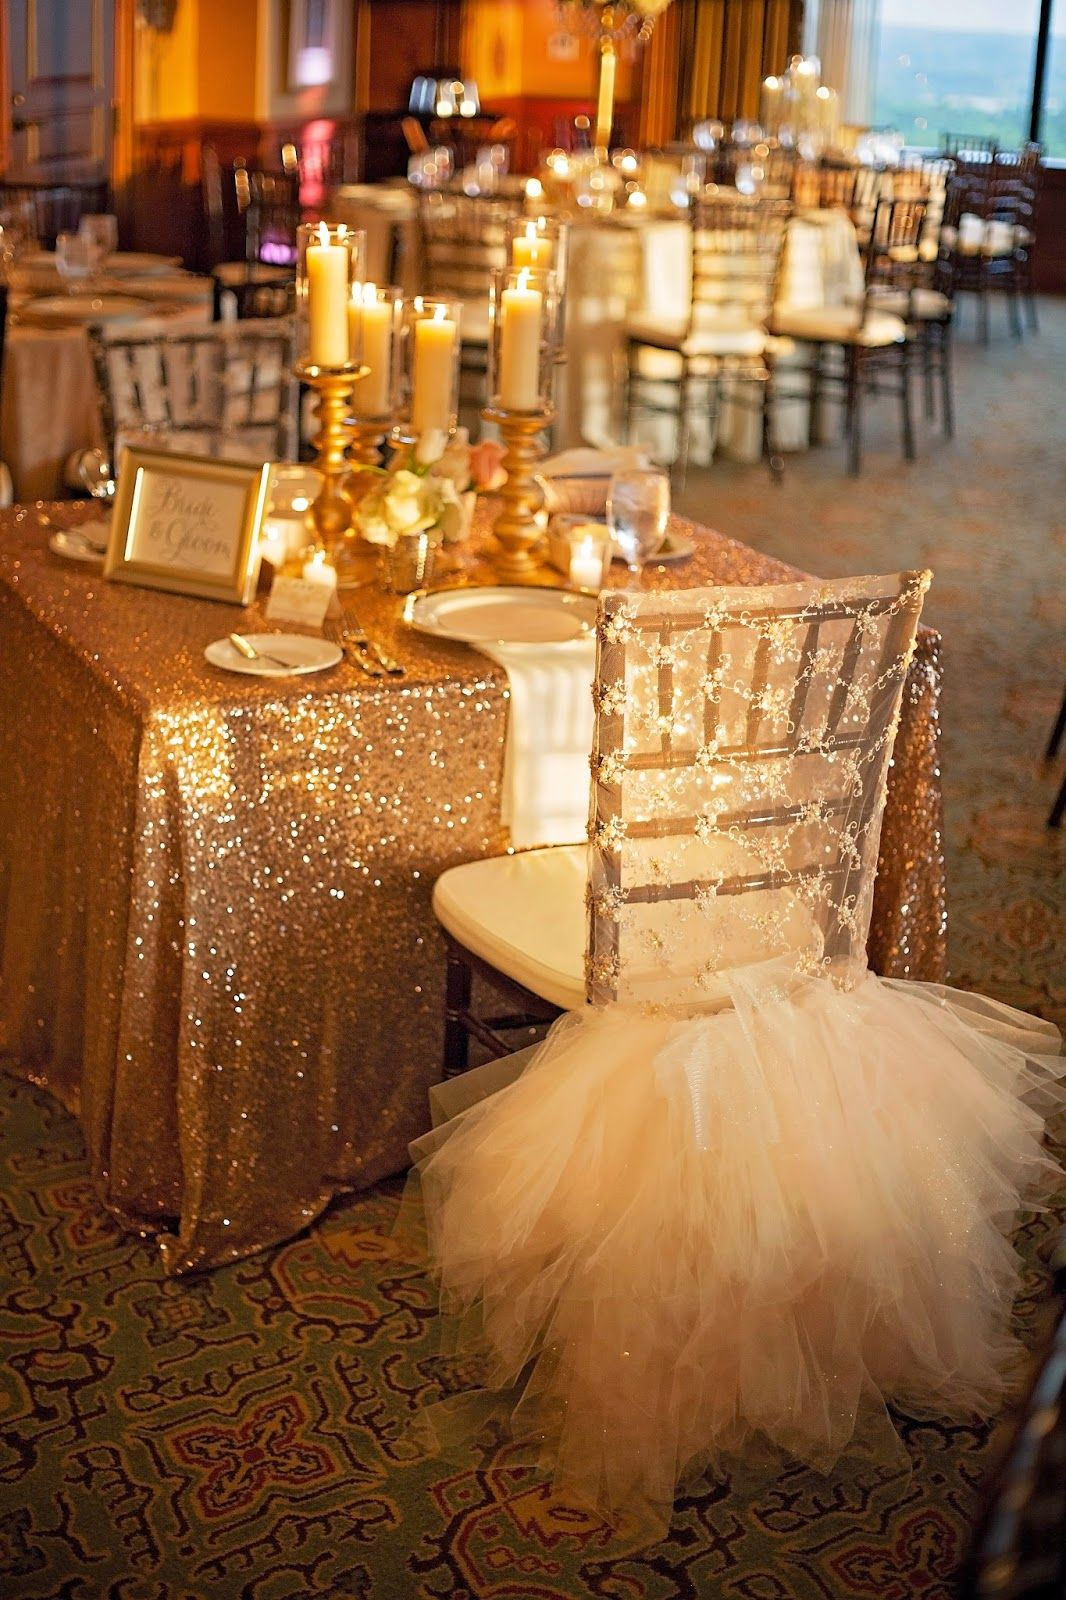 Lace and Tulle chair cover sequin tablecloth sweetheart table